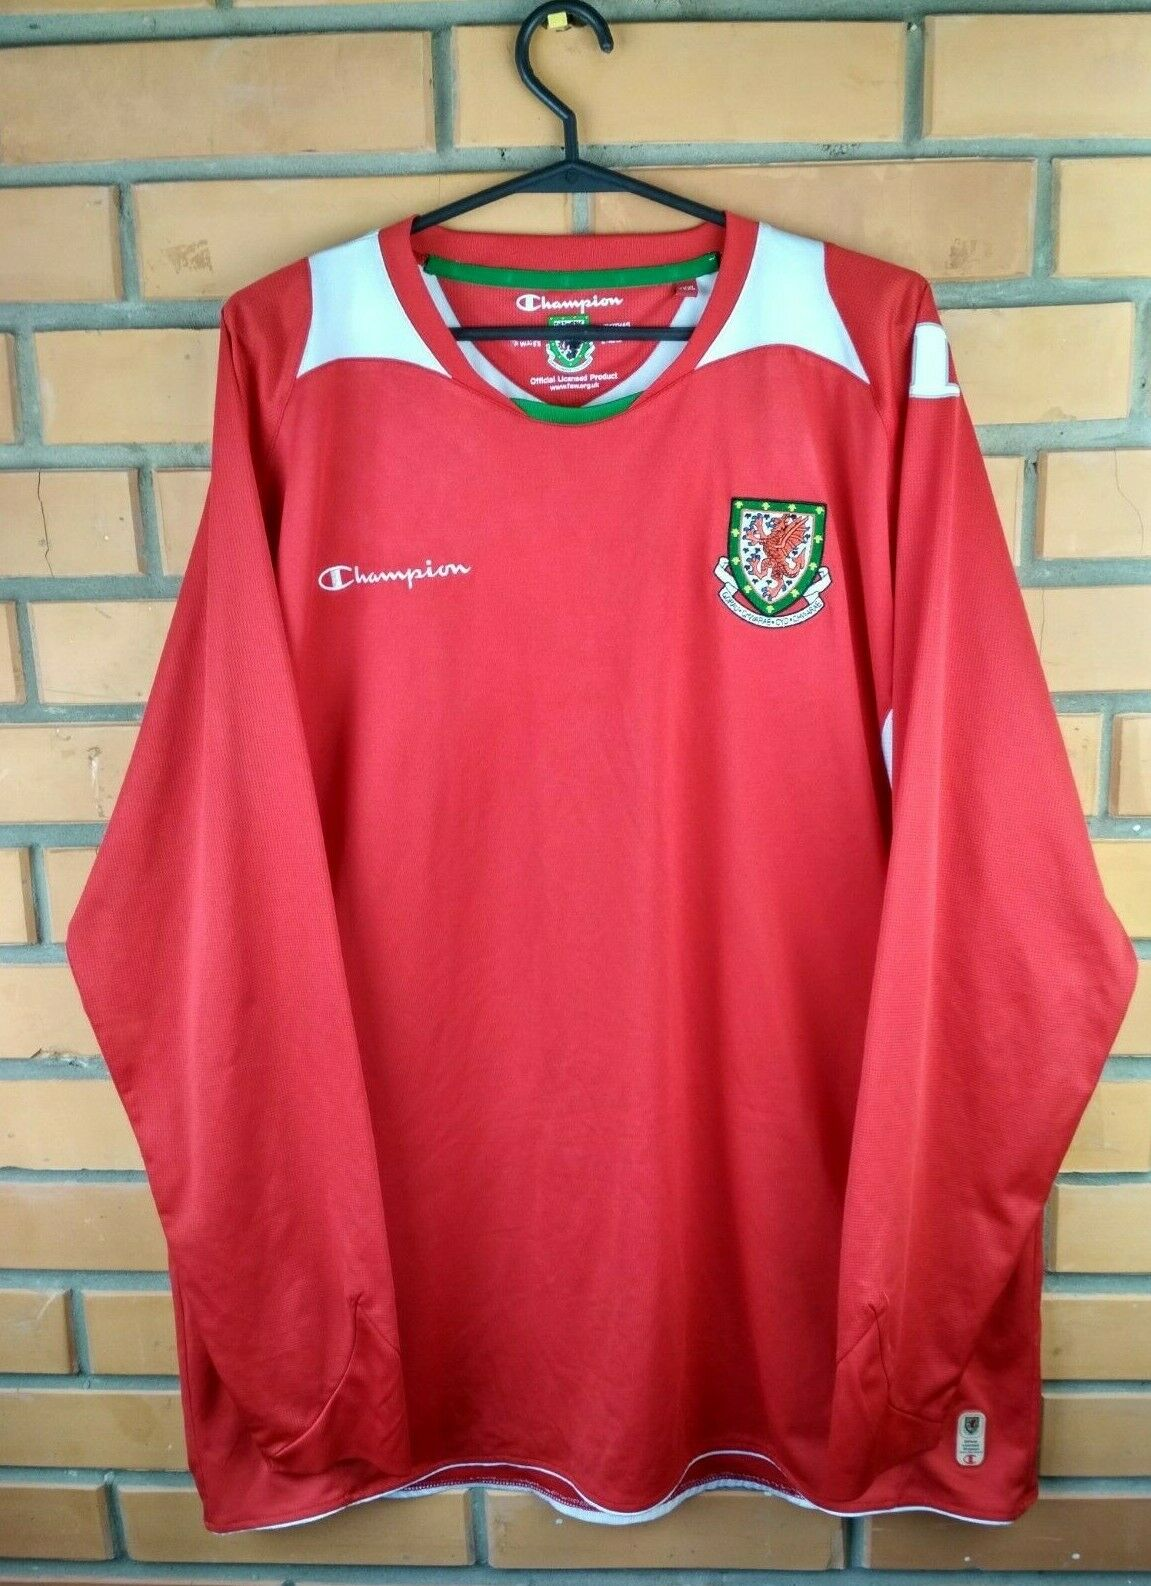 Wales soccer jersey 3XL 2008 2010 home shirt lungo sleeve footbtutti Champion